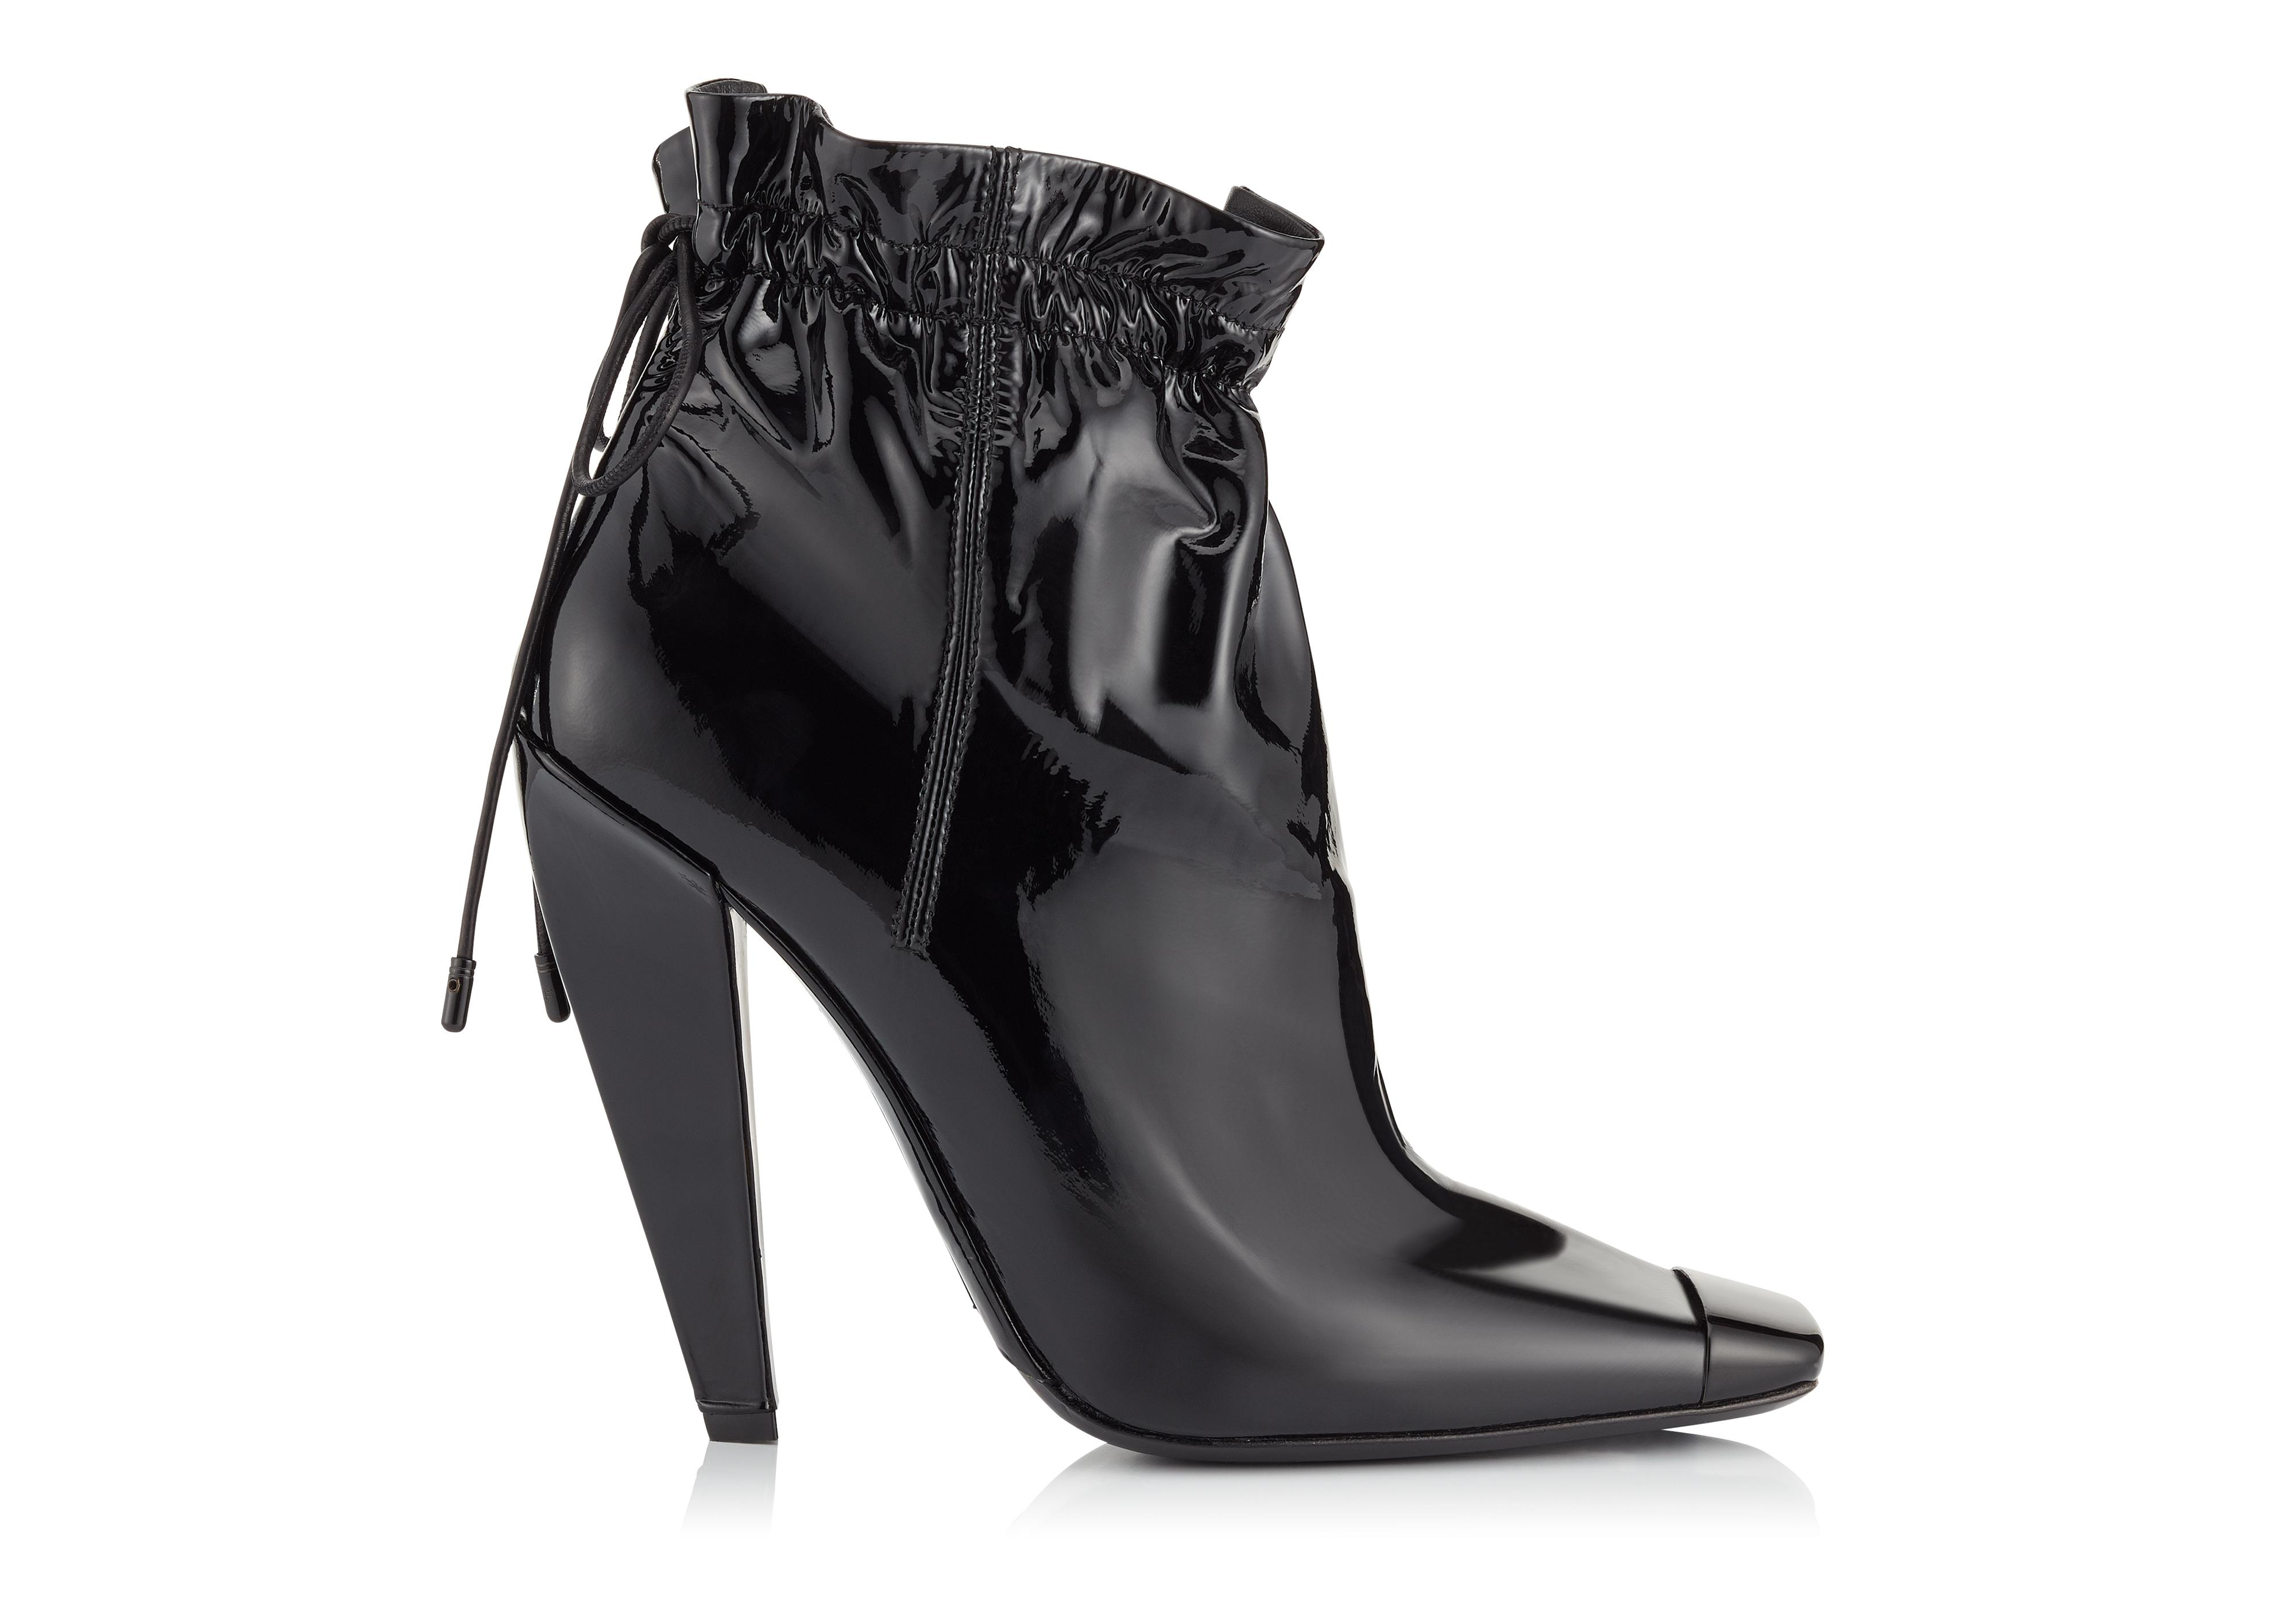 PATENT LEATHER COULISSE ANKLE BOOT A thumbnail